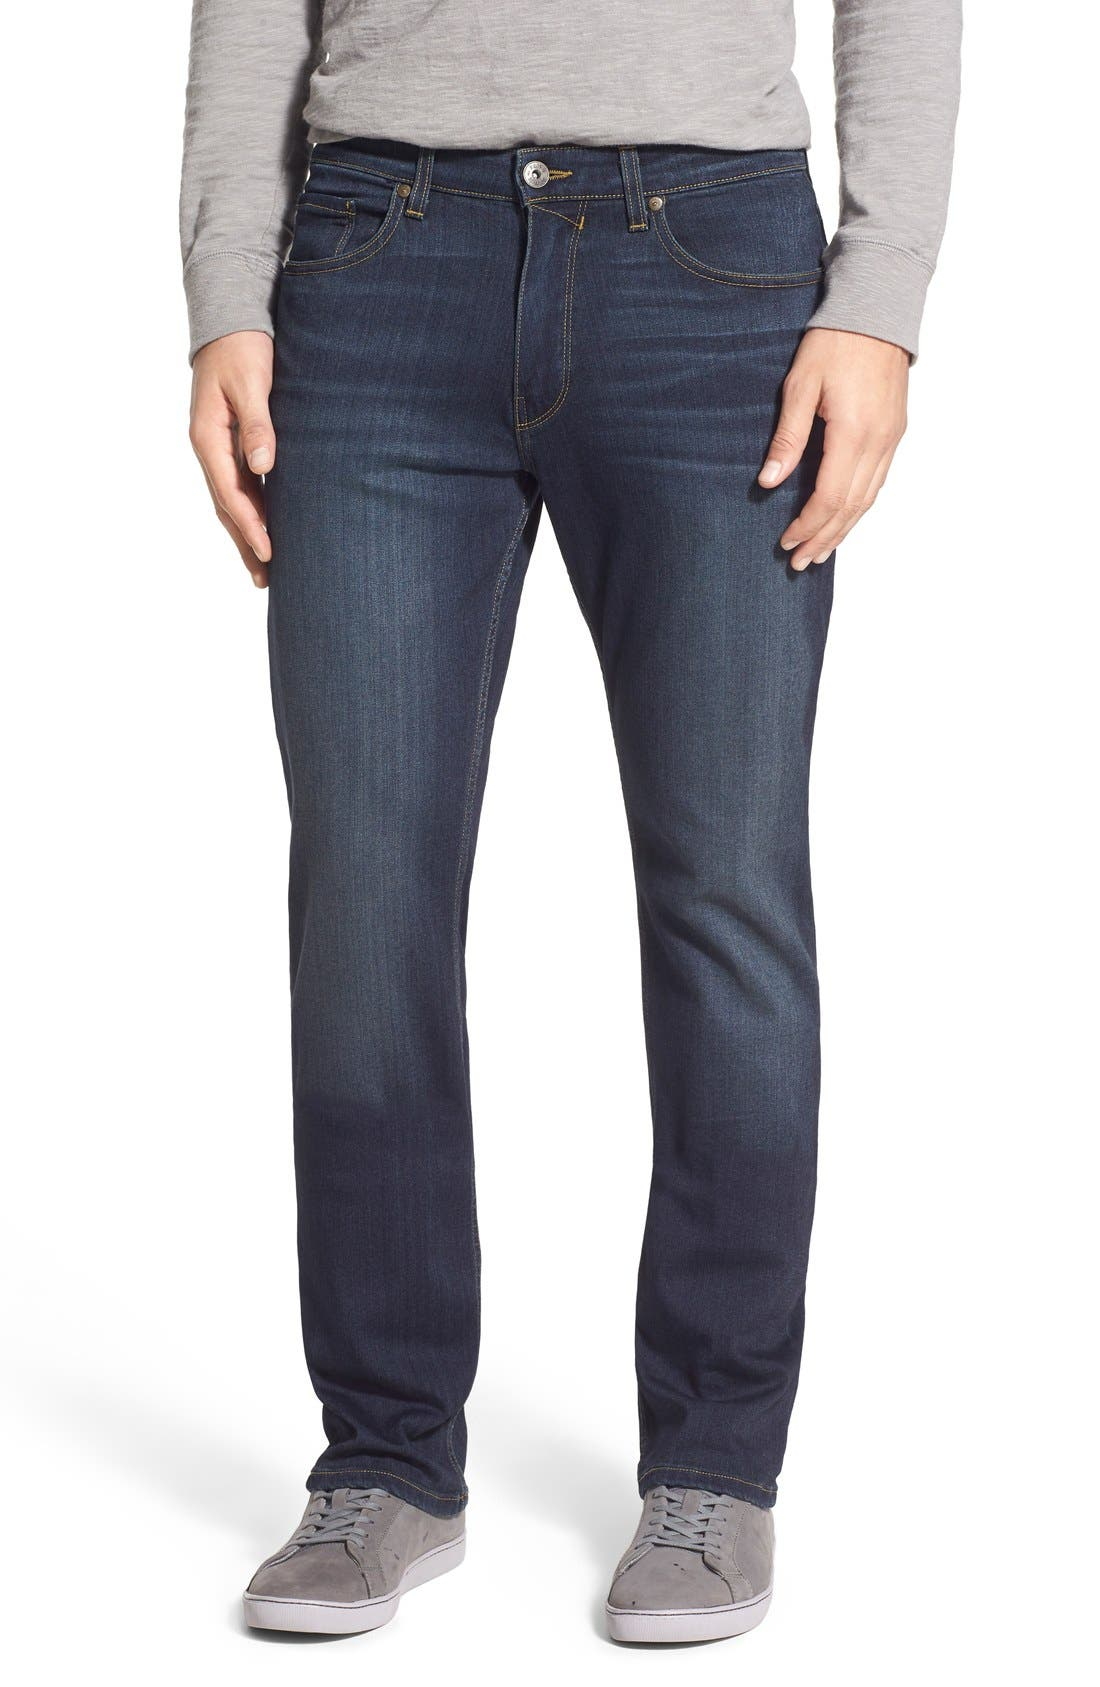 Main Image - PAIGE 'Normandie' Straight Leg Jeans (Rigby)